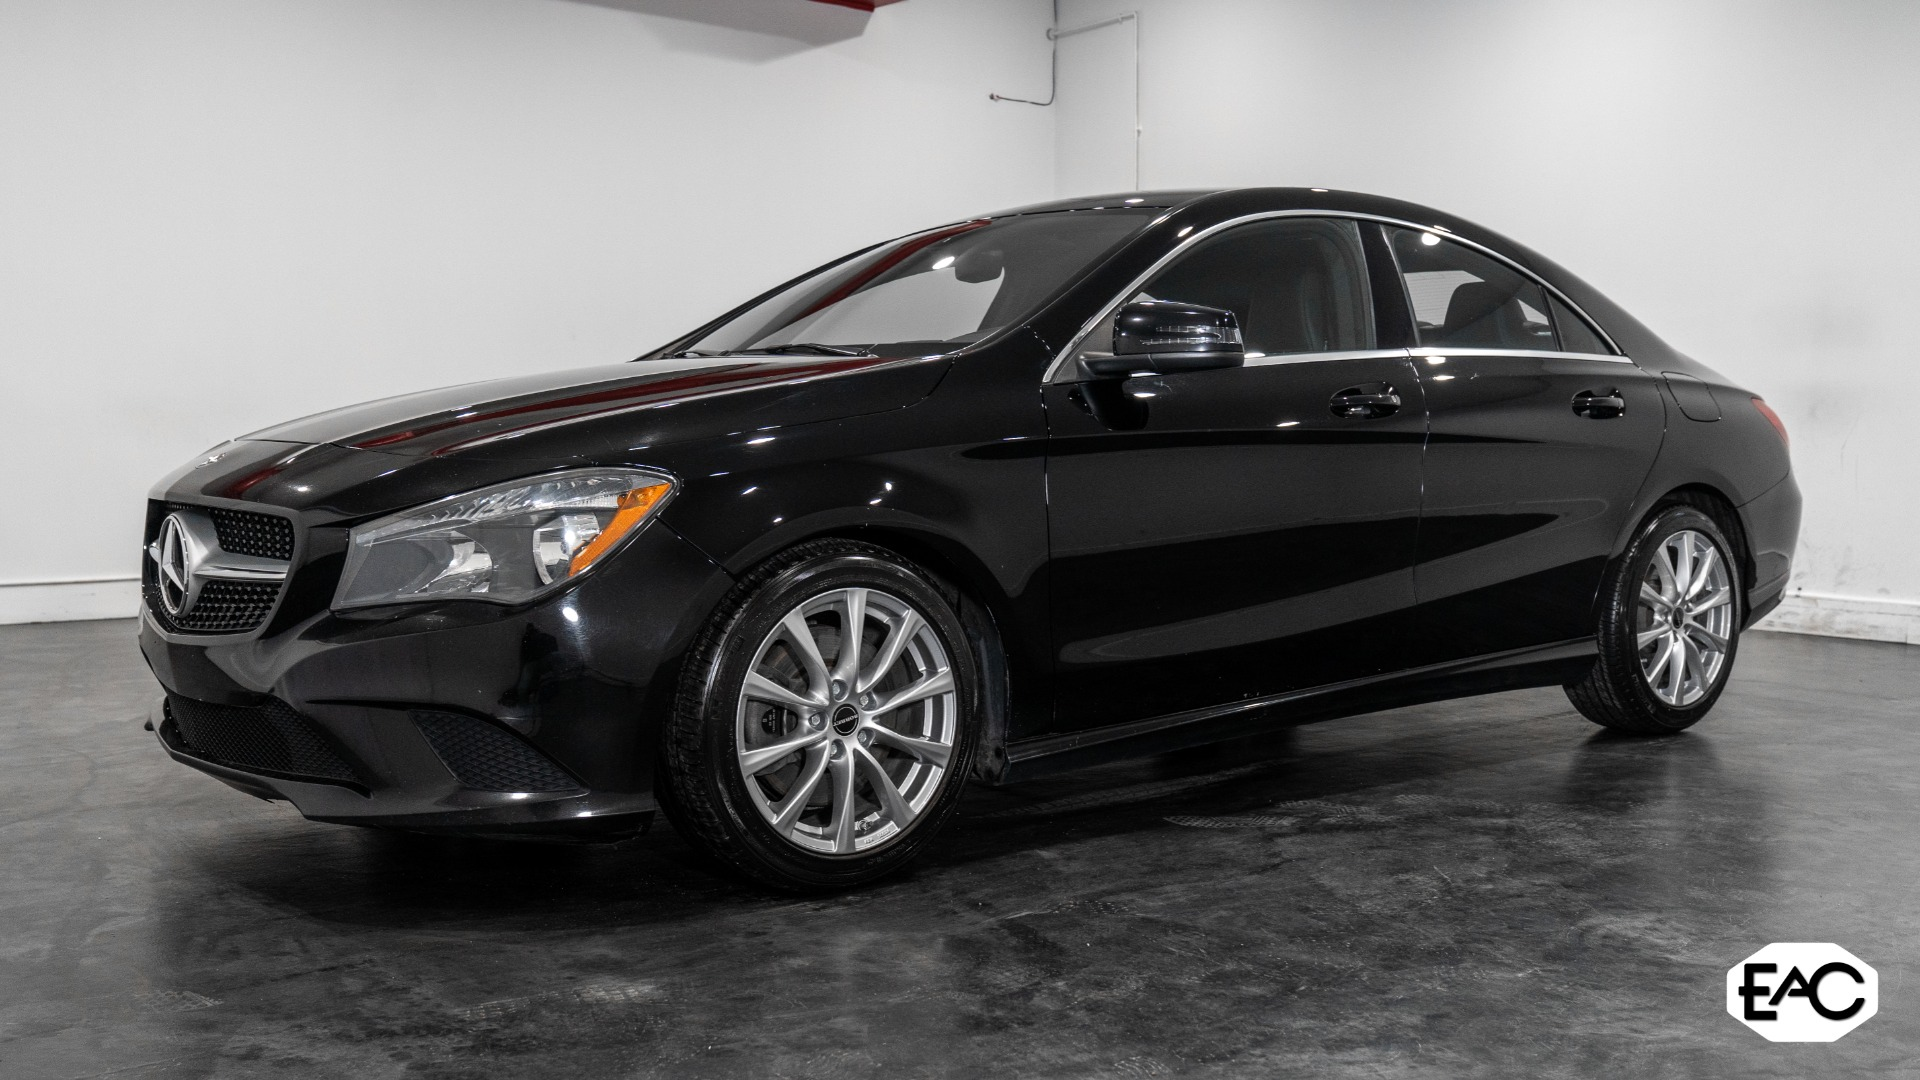 Used 2014 Mercedes-Benz CLA CLA 250 4MATIC for sale $14,990 at Empire Auto Collection in Warren MI 48091 1